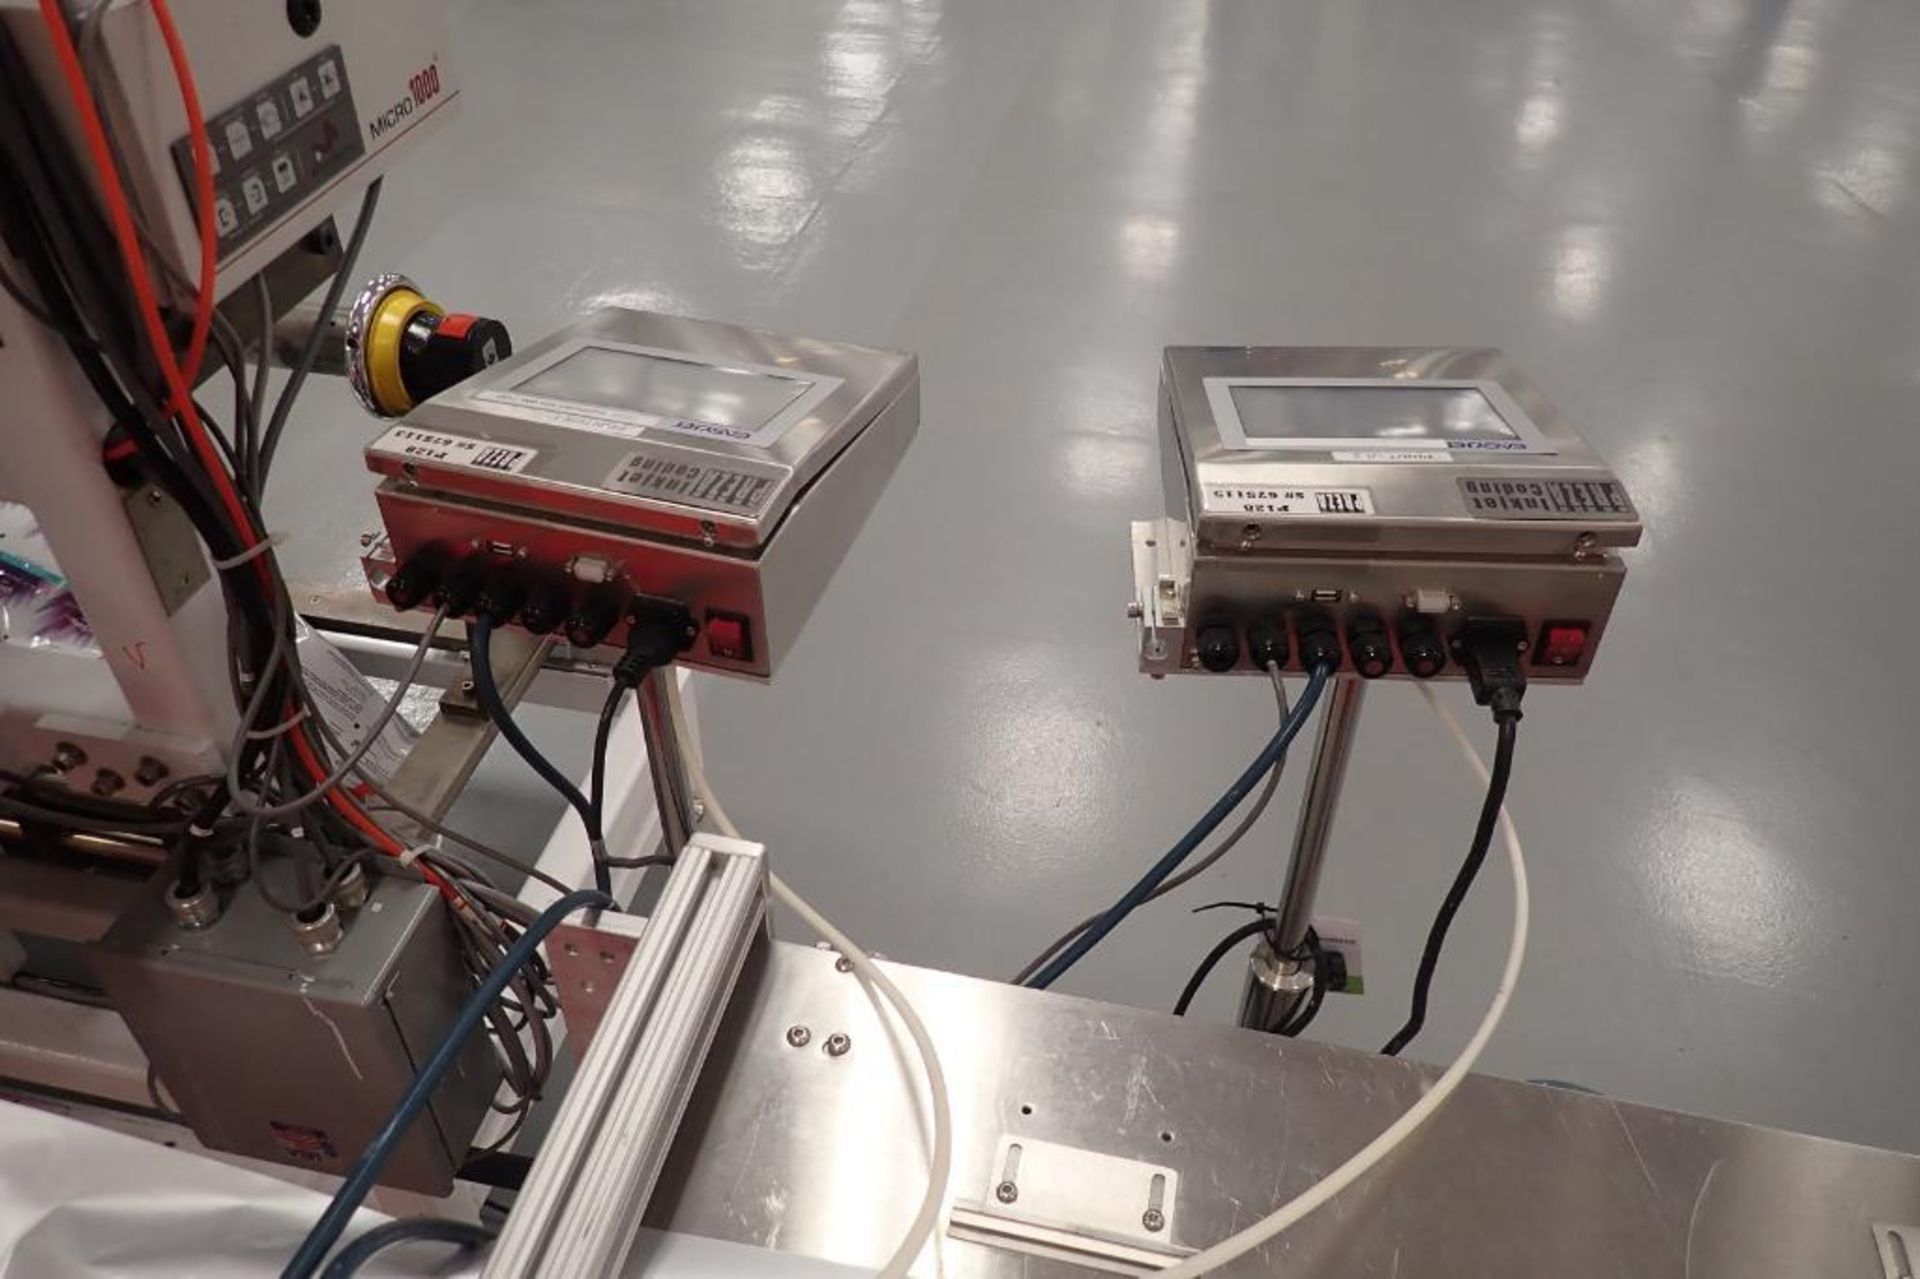 Lot 11 - Preza easjet ink jet printers, SN 675115, SN 675113, with head { Rigging Fee: $50}